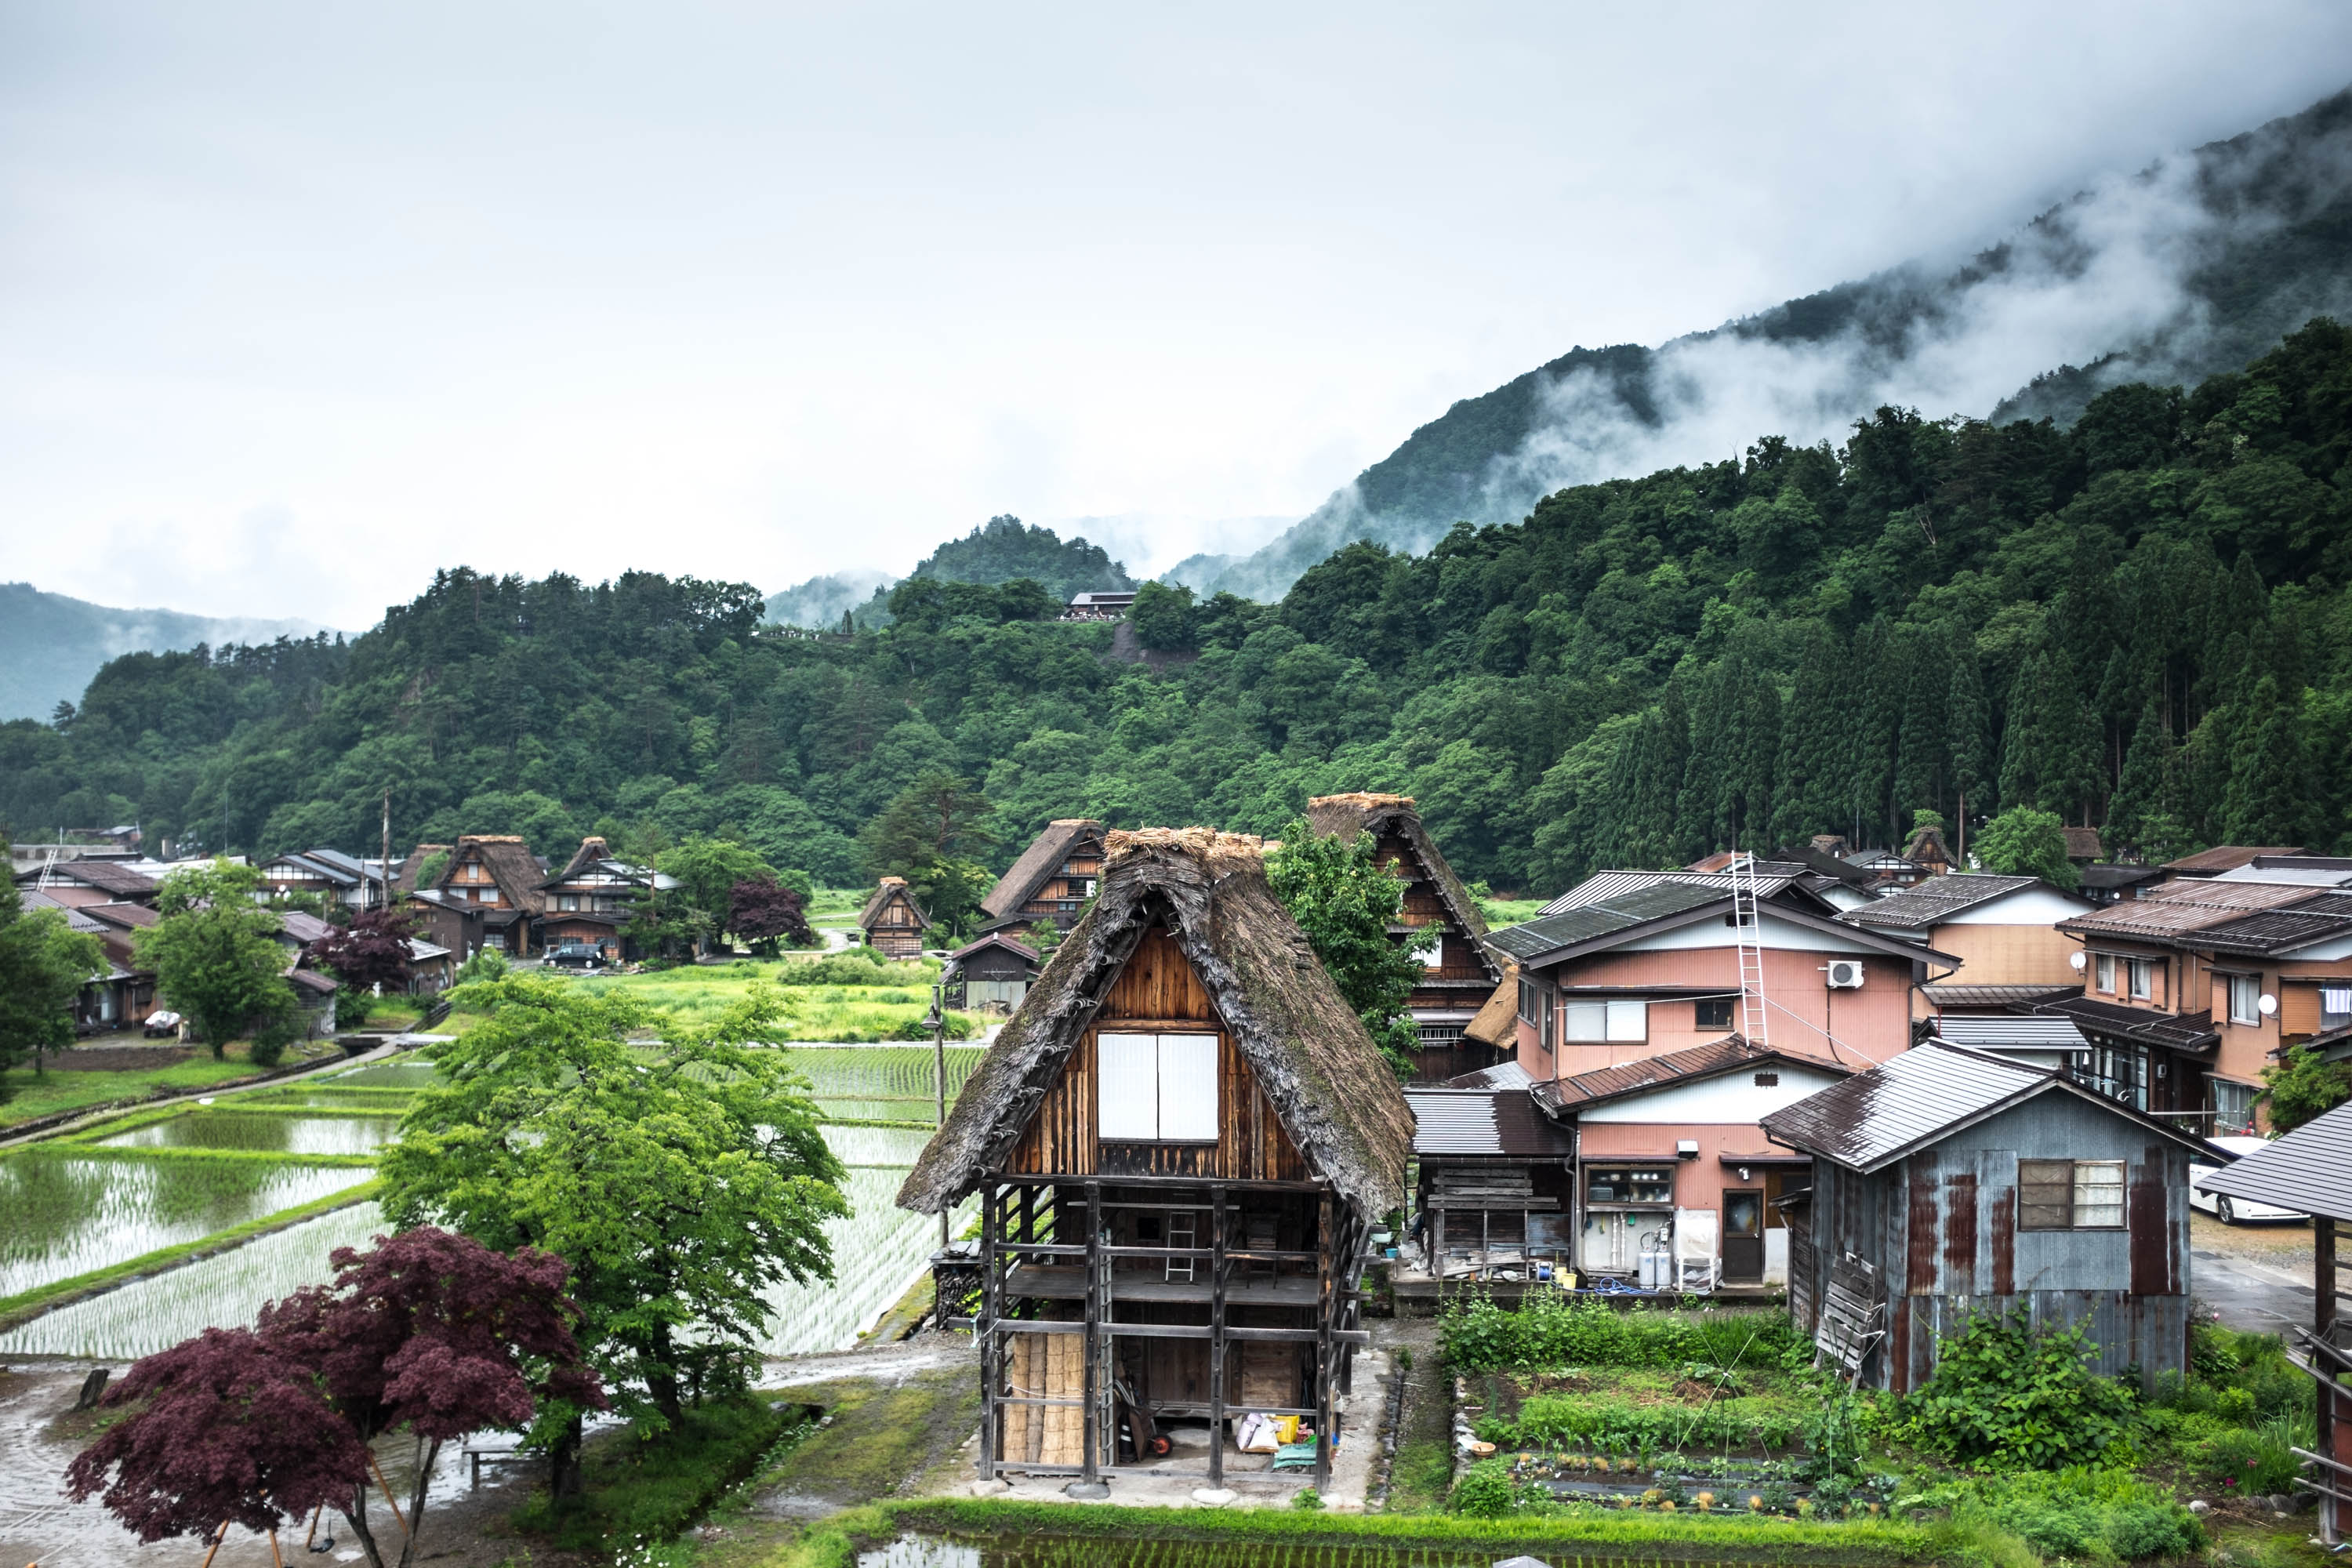 Japanese Charm: Countryside Villages, Shops and Gardens Galore!